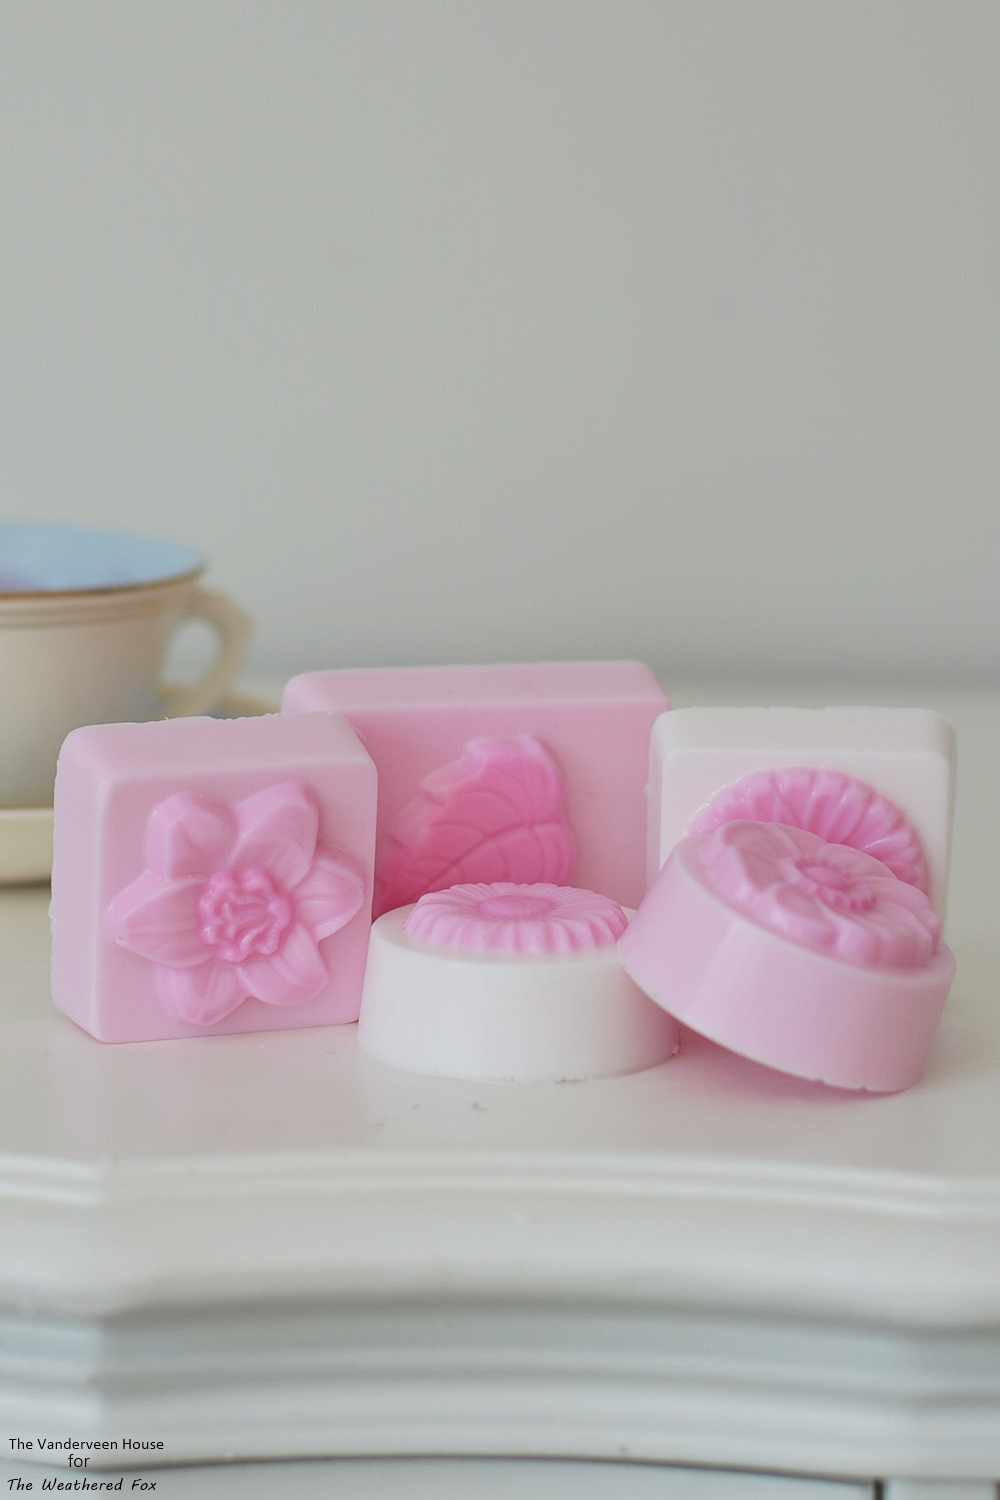 Melt and pour soap making for beginners